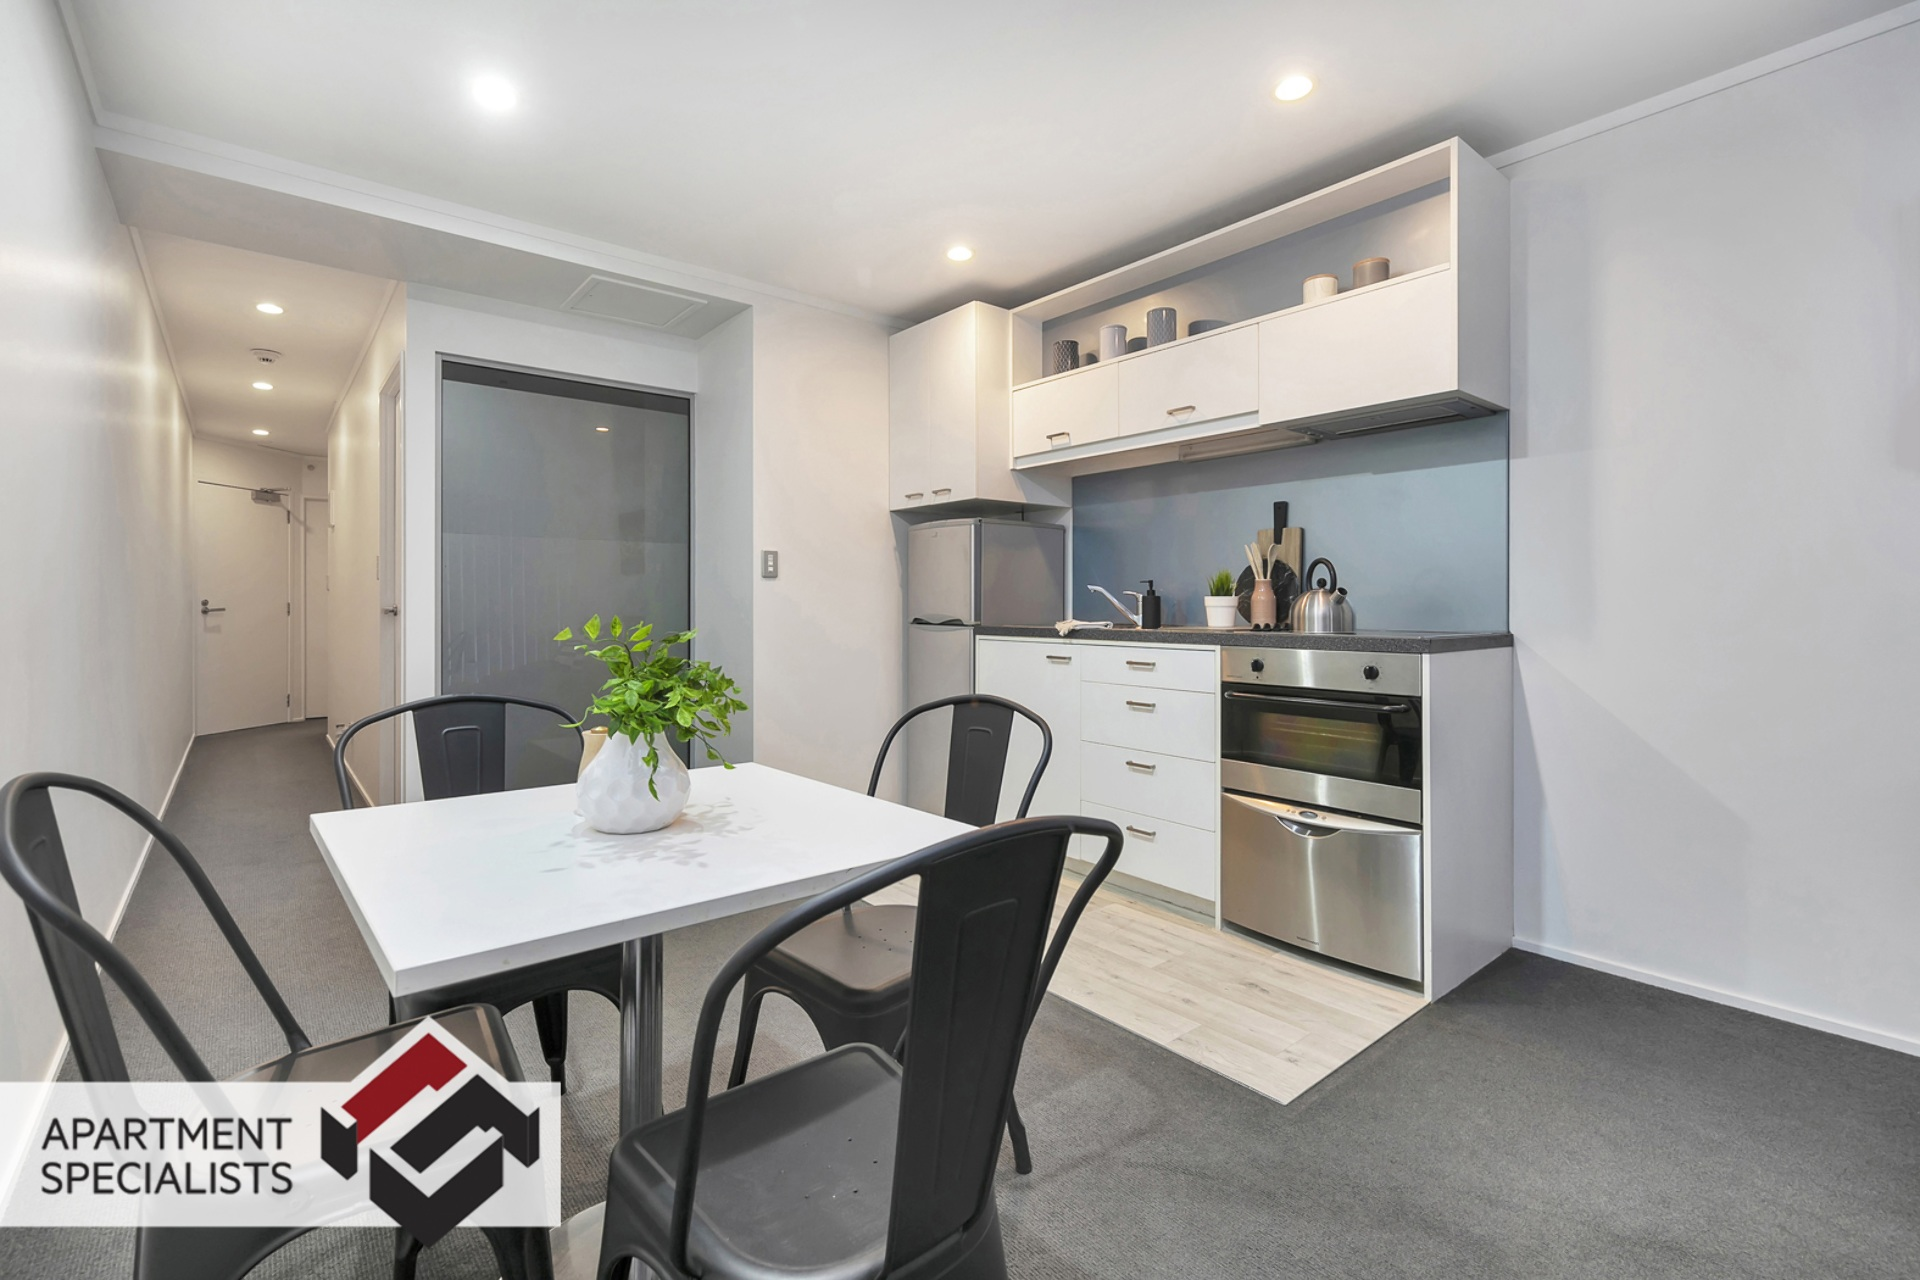 Hero | 53 Cook Street, City Centre | Apartment Specialists